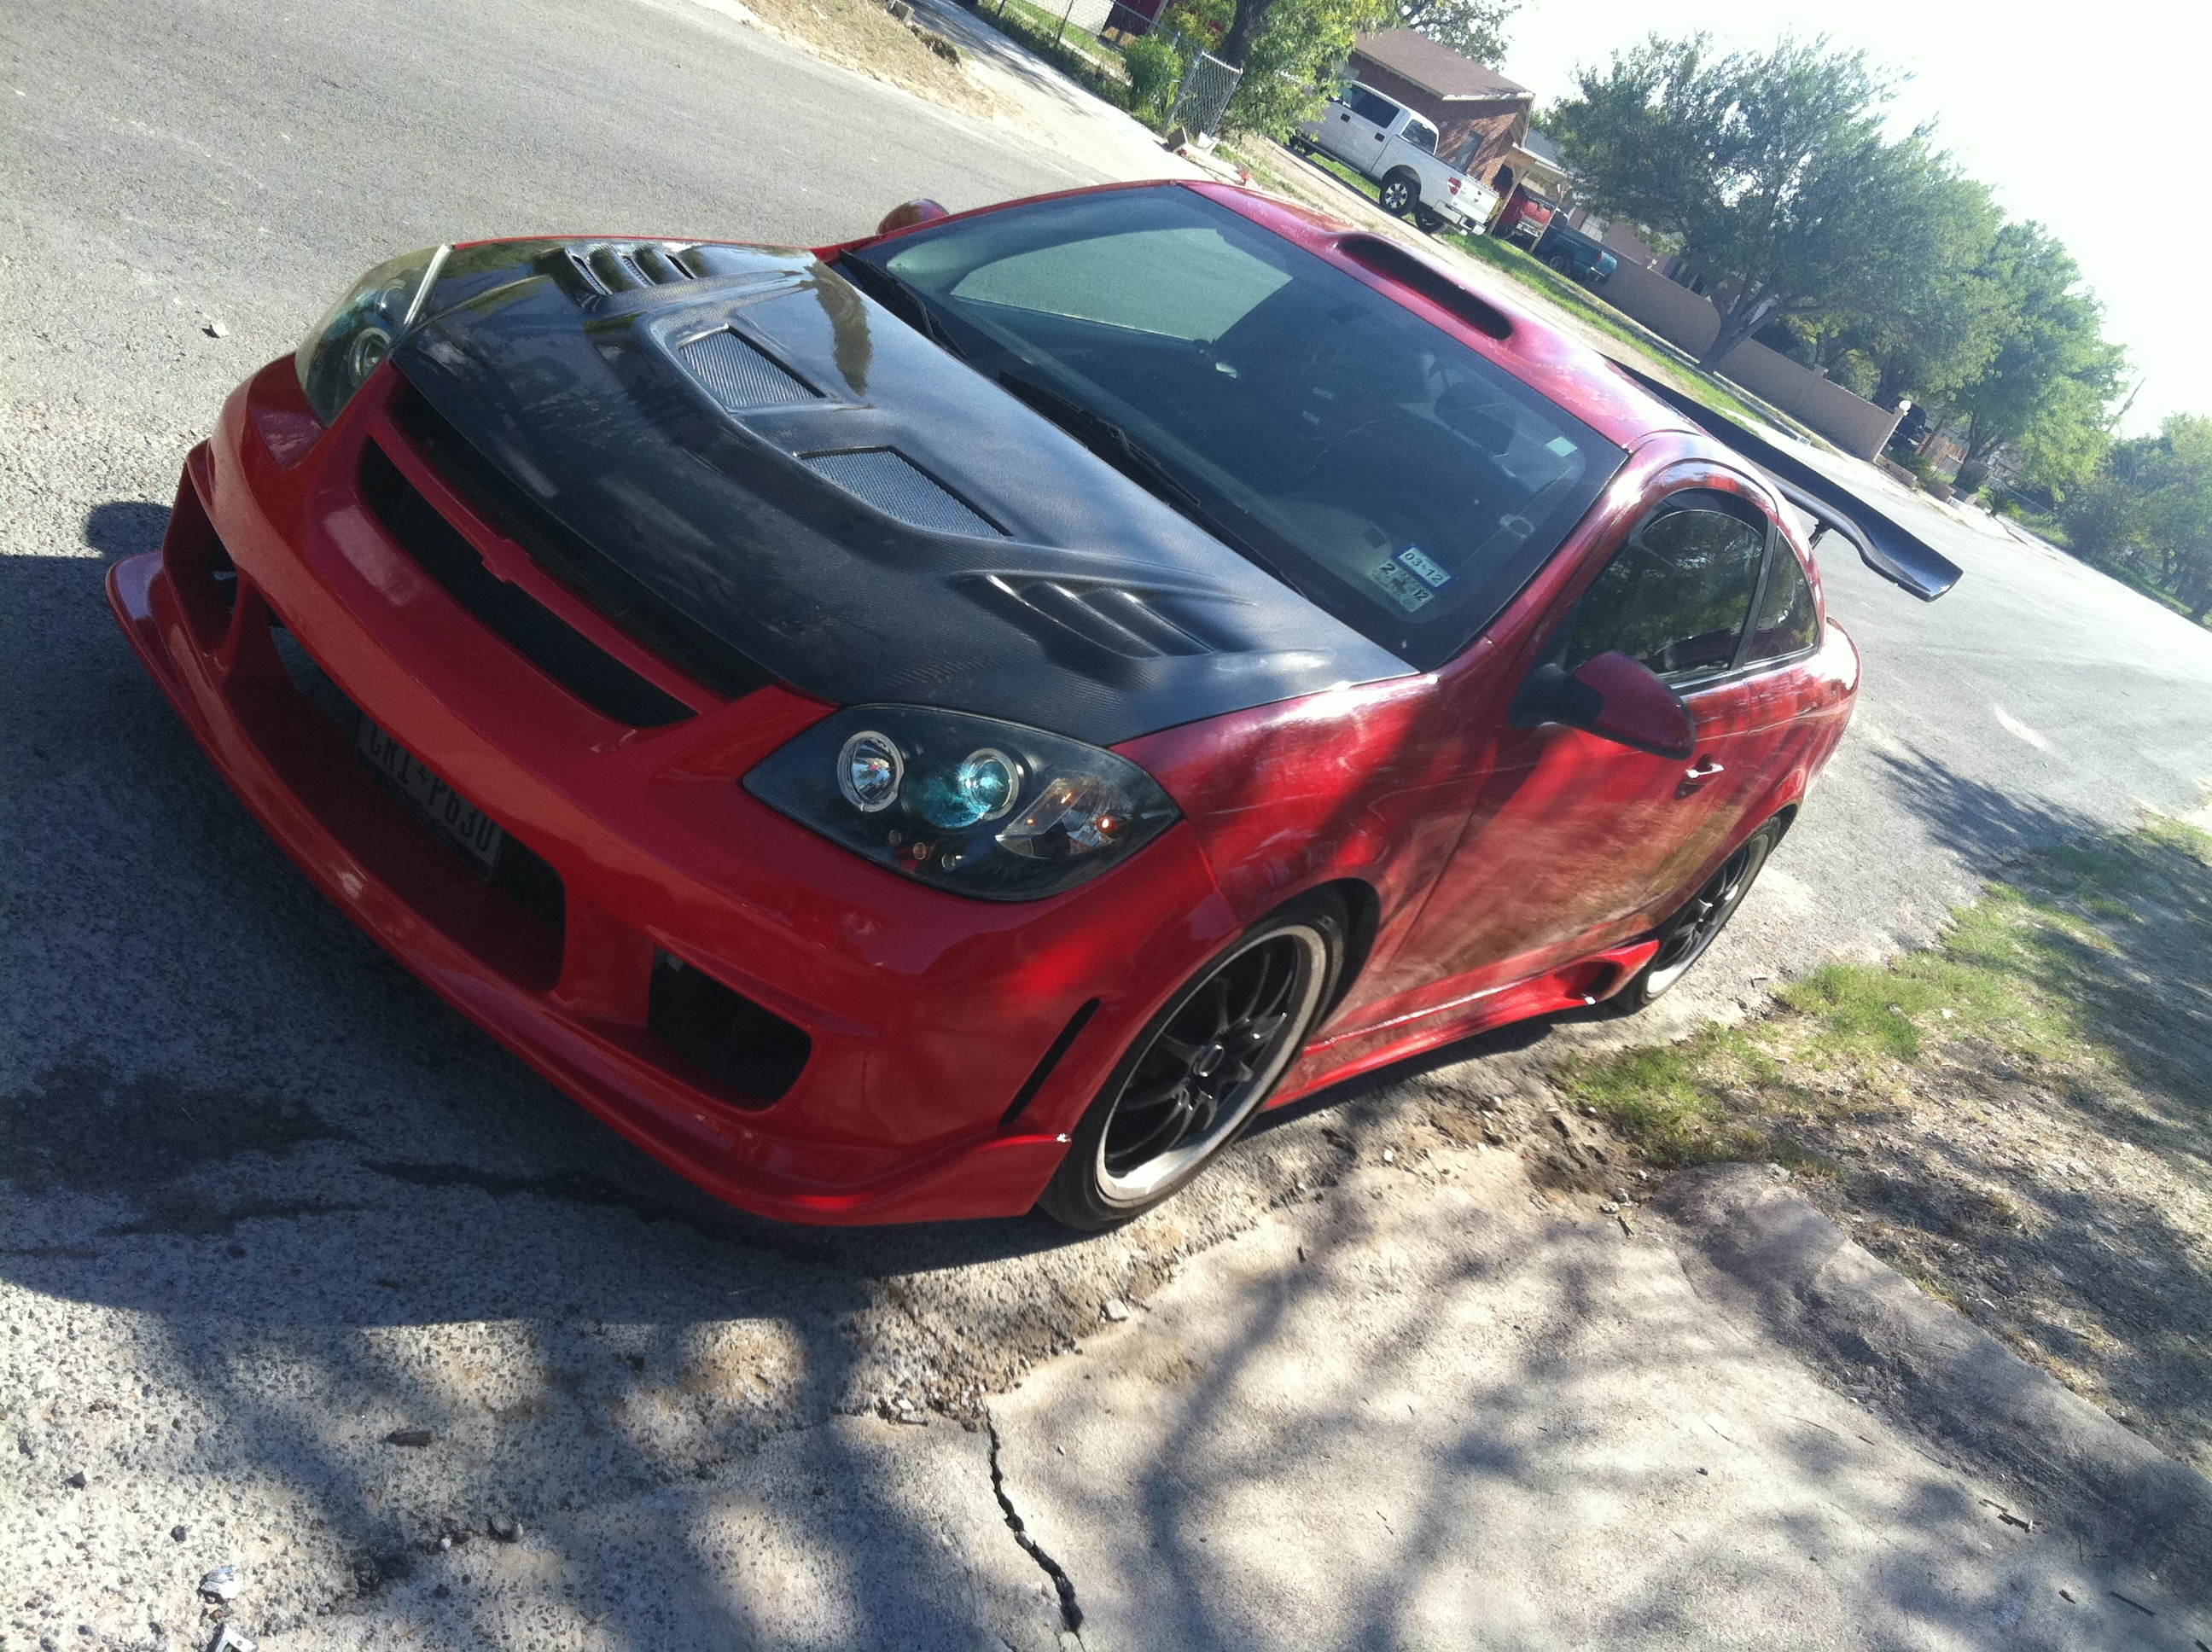 junior_reyez's 2007 Pontiac G5